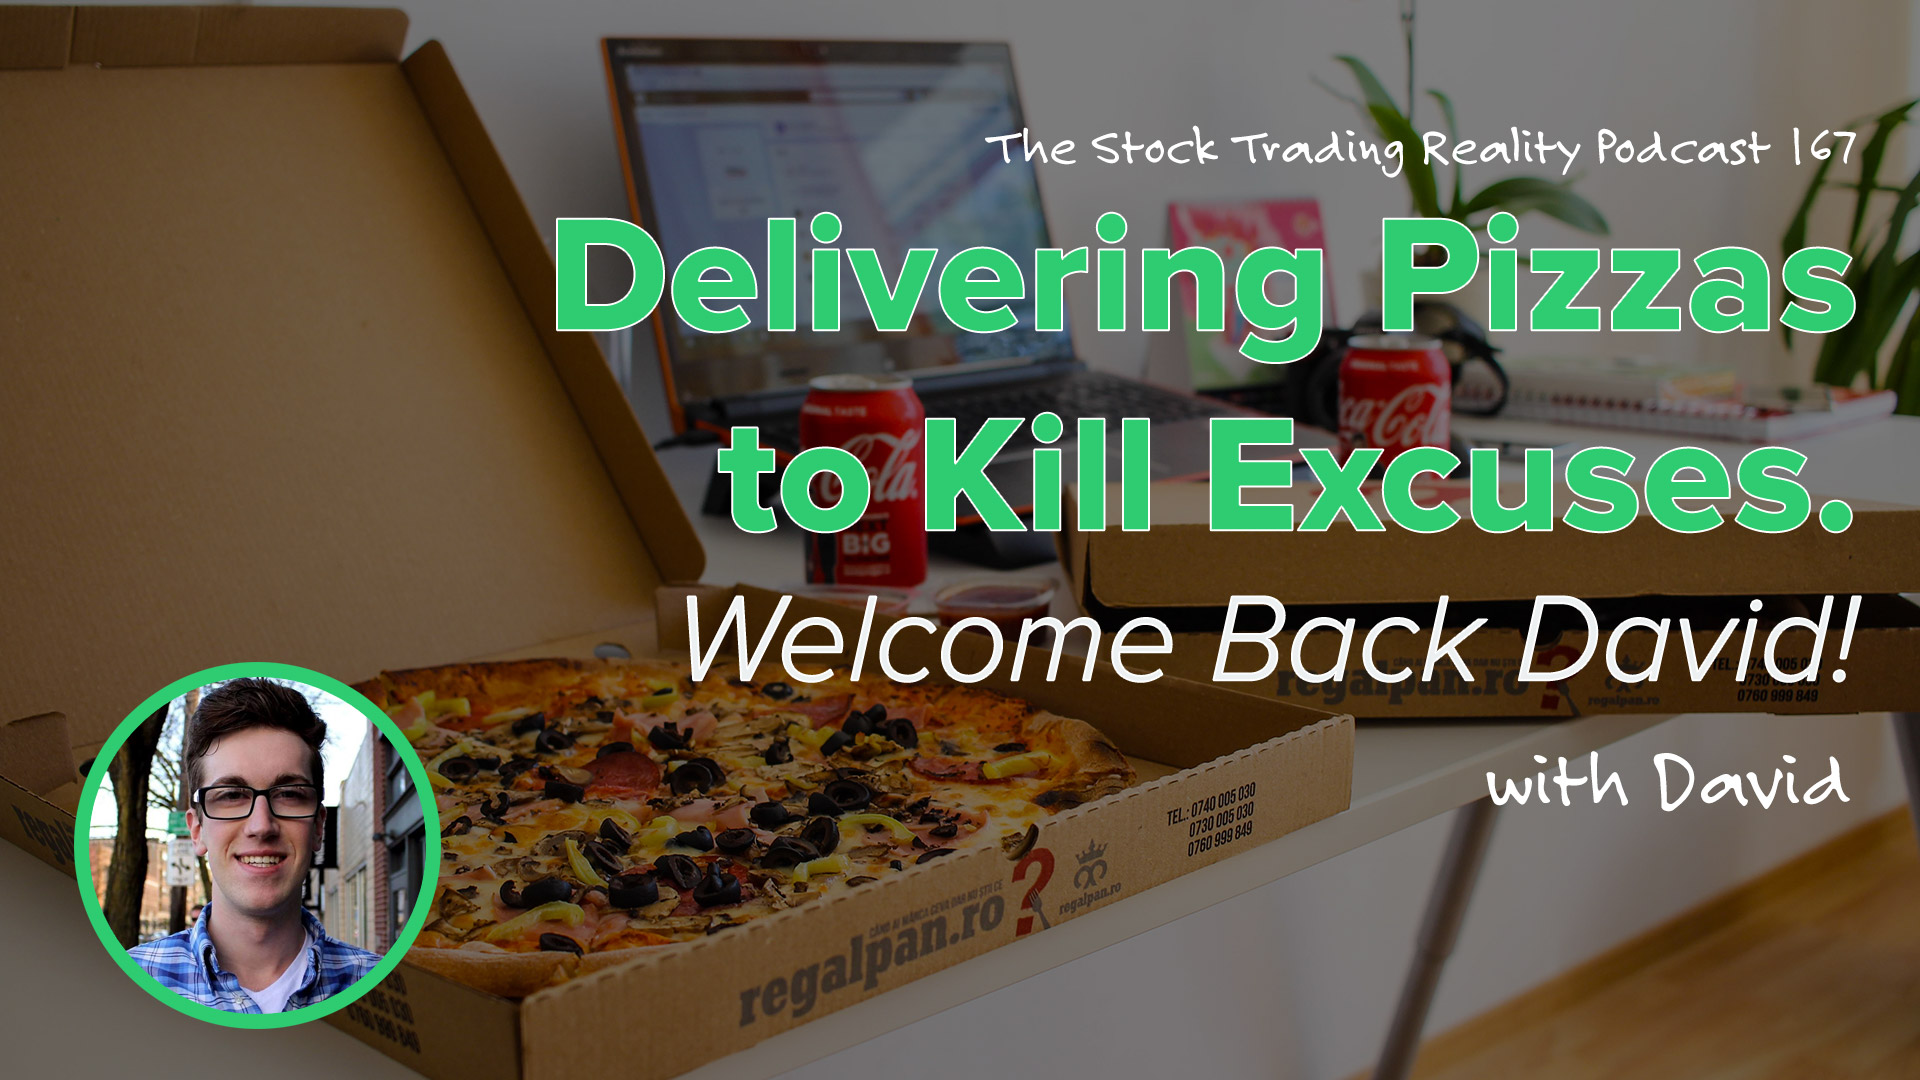 STR 167: Delivering Pizzas to Kill Excuses. Welcome Back David!